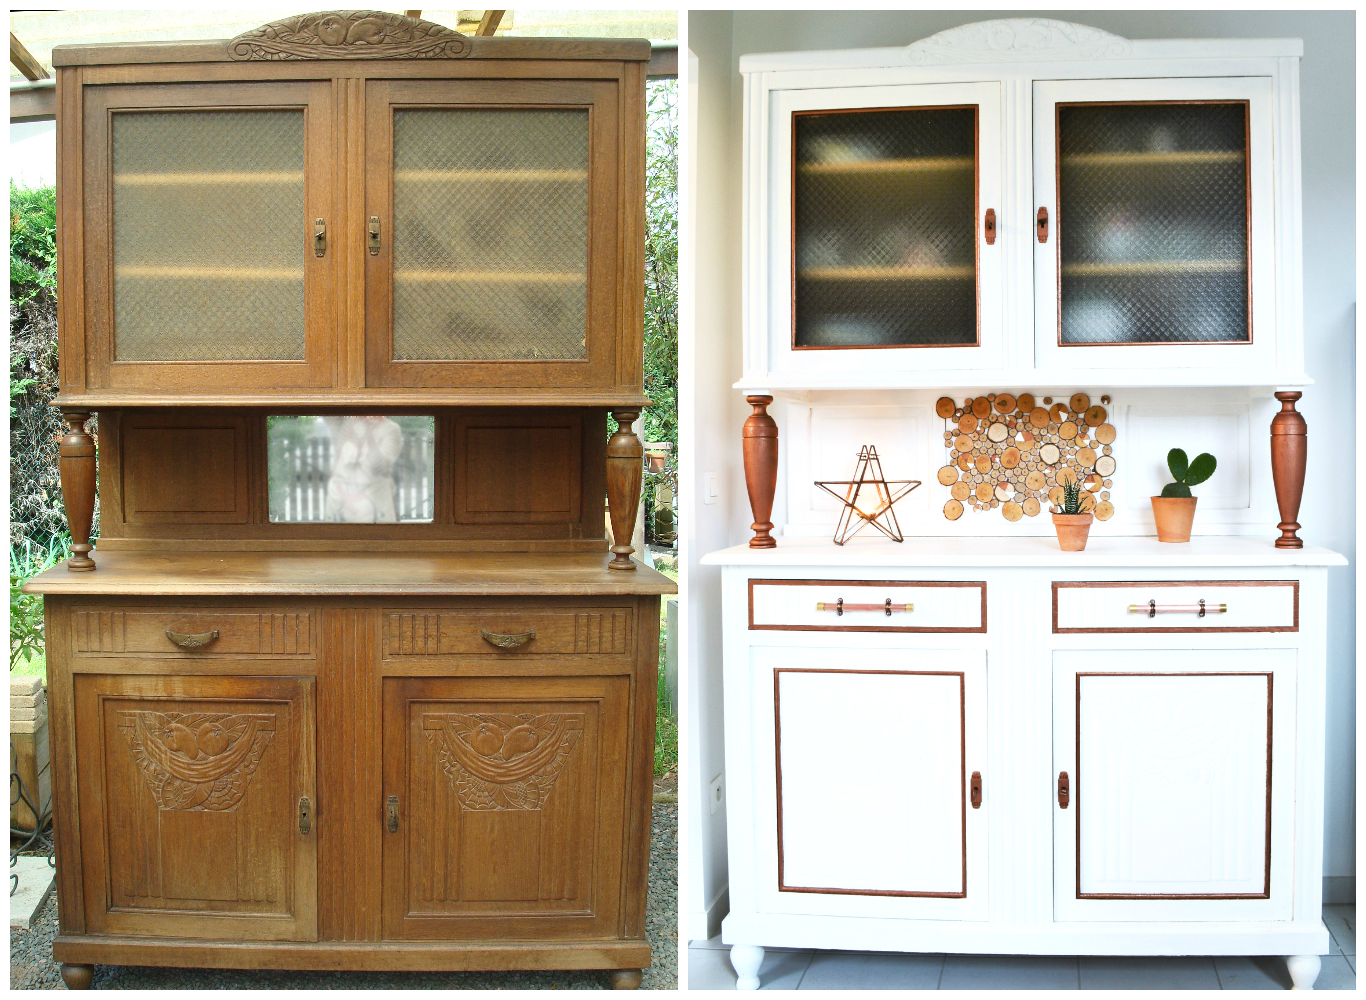 R nover un buffet ancien diy for Nettoyer meuble ancien